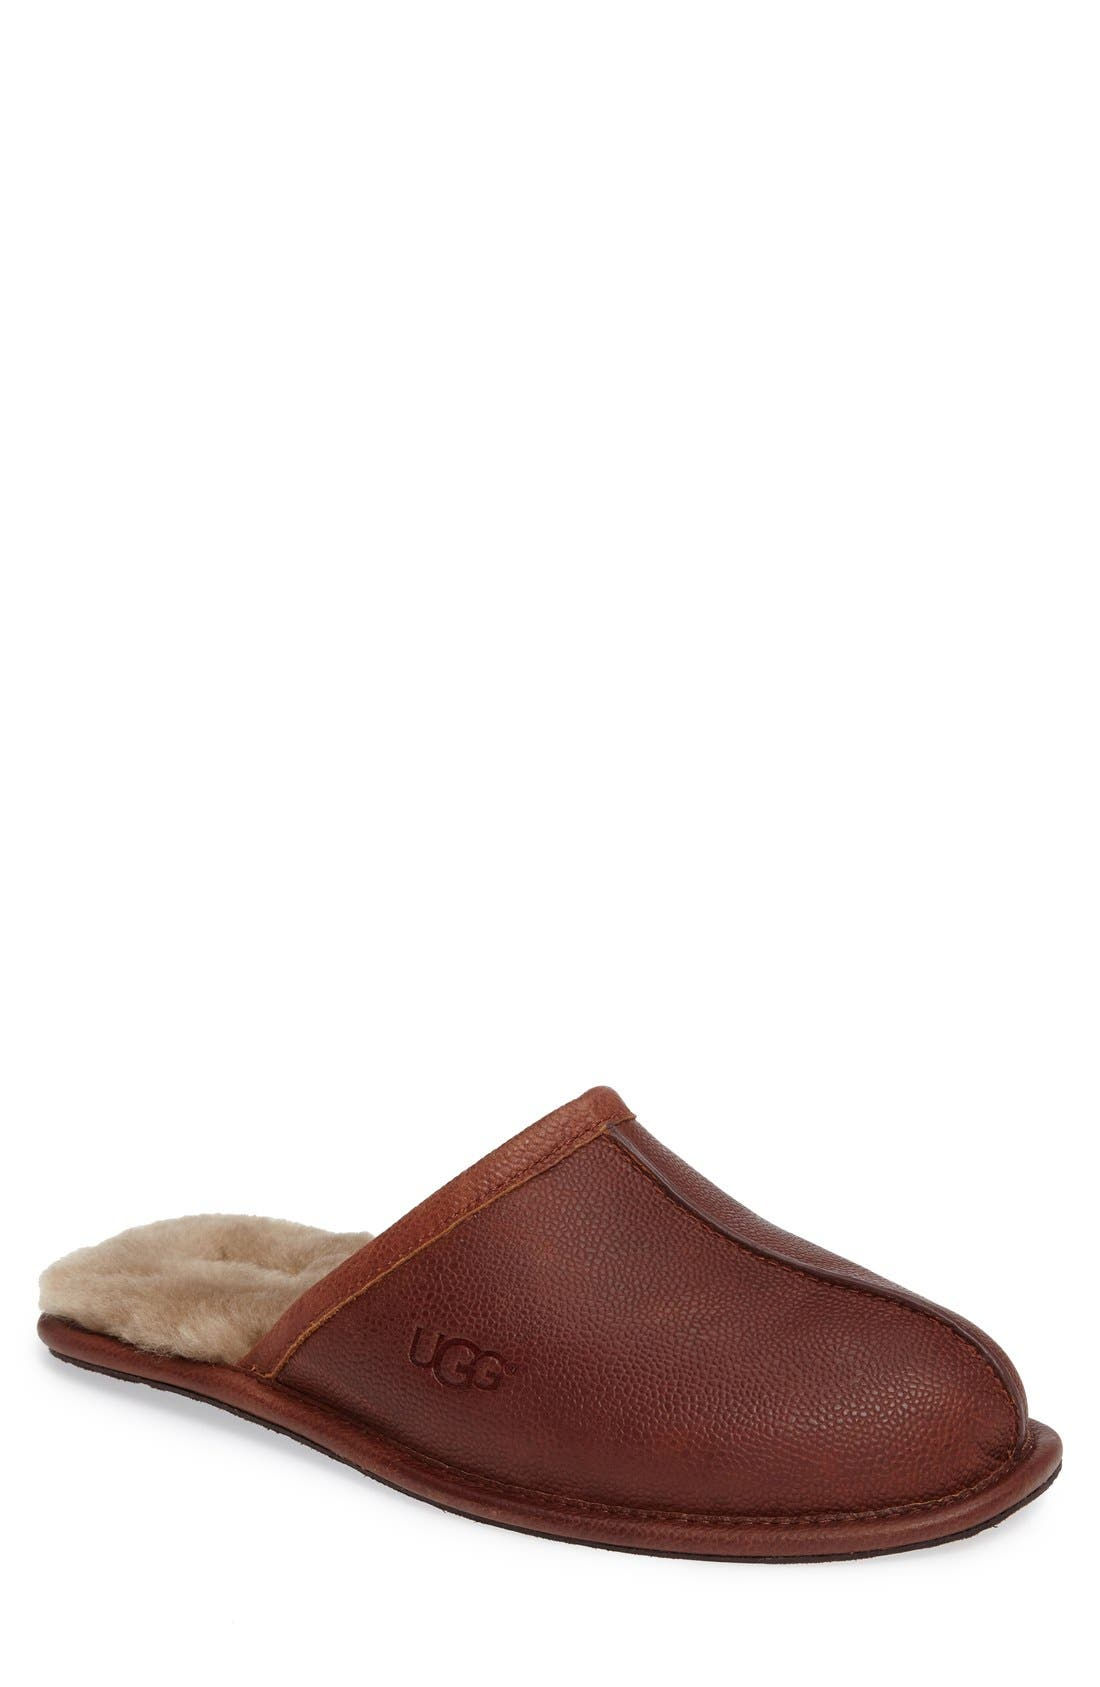 Scuff Slipper,                         Main,                         color, 201